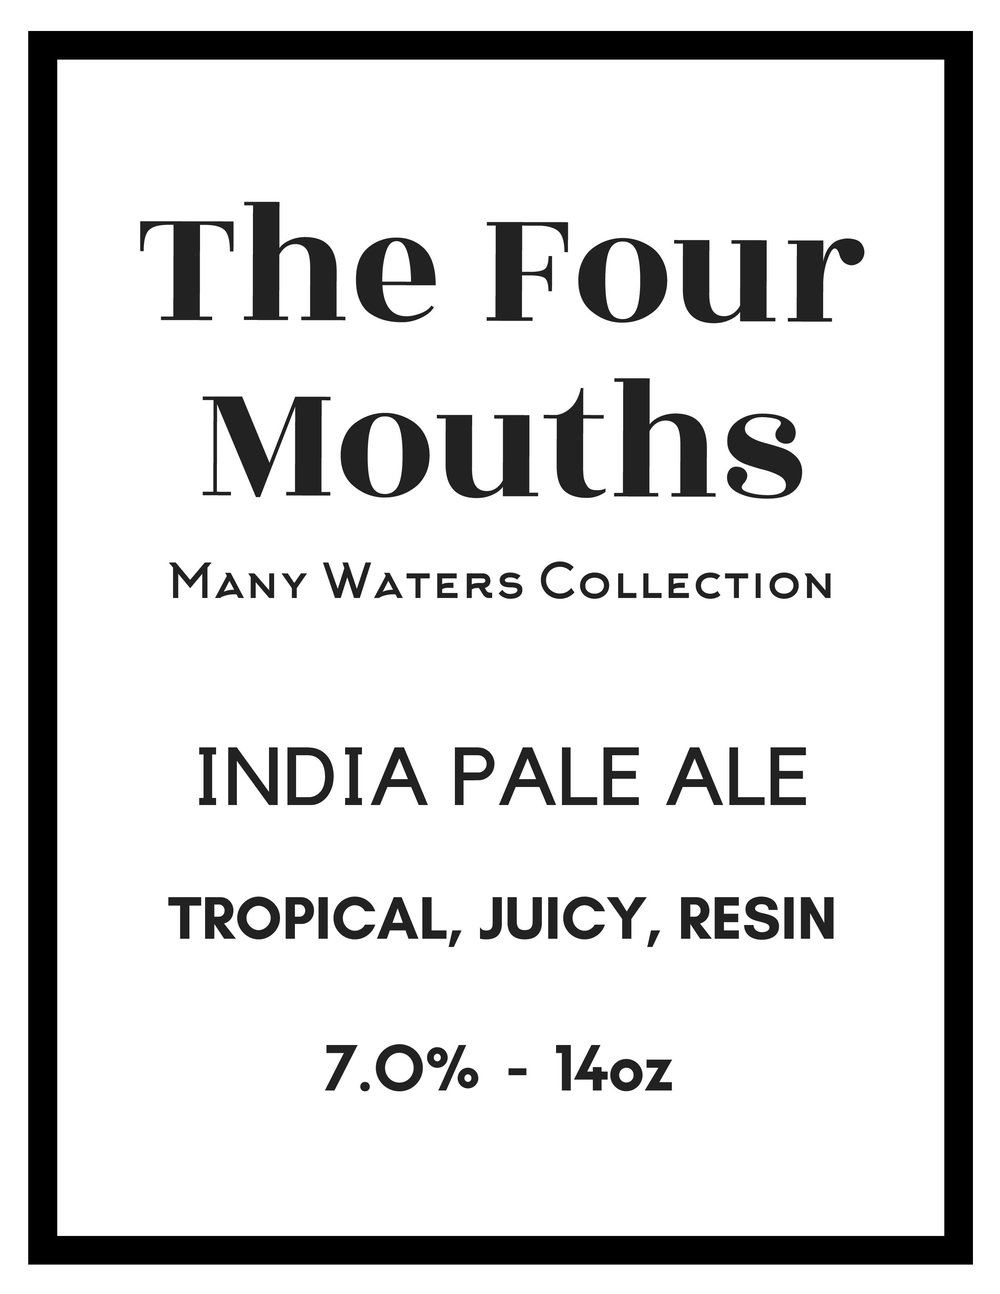 Where four waterways meet on the southwestern side of Chincoteague Island, The Four Mouths blends four different hops (Mosaic + El Dorado + Hallertau Blanc + Callista) in a soft, east coast style for a juicy, soft and resinous brew.